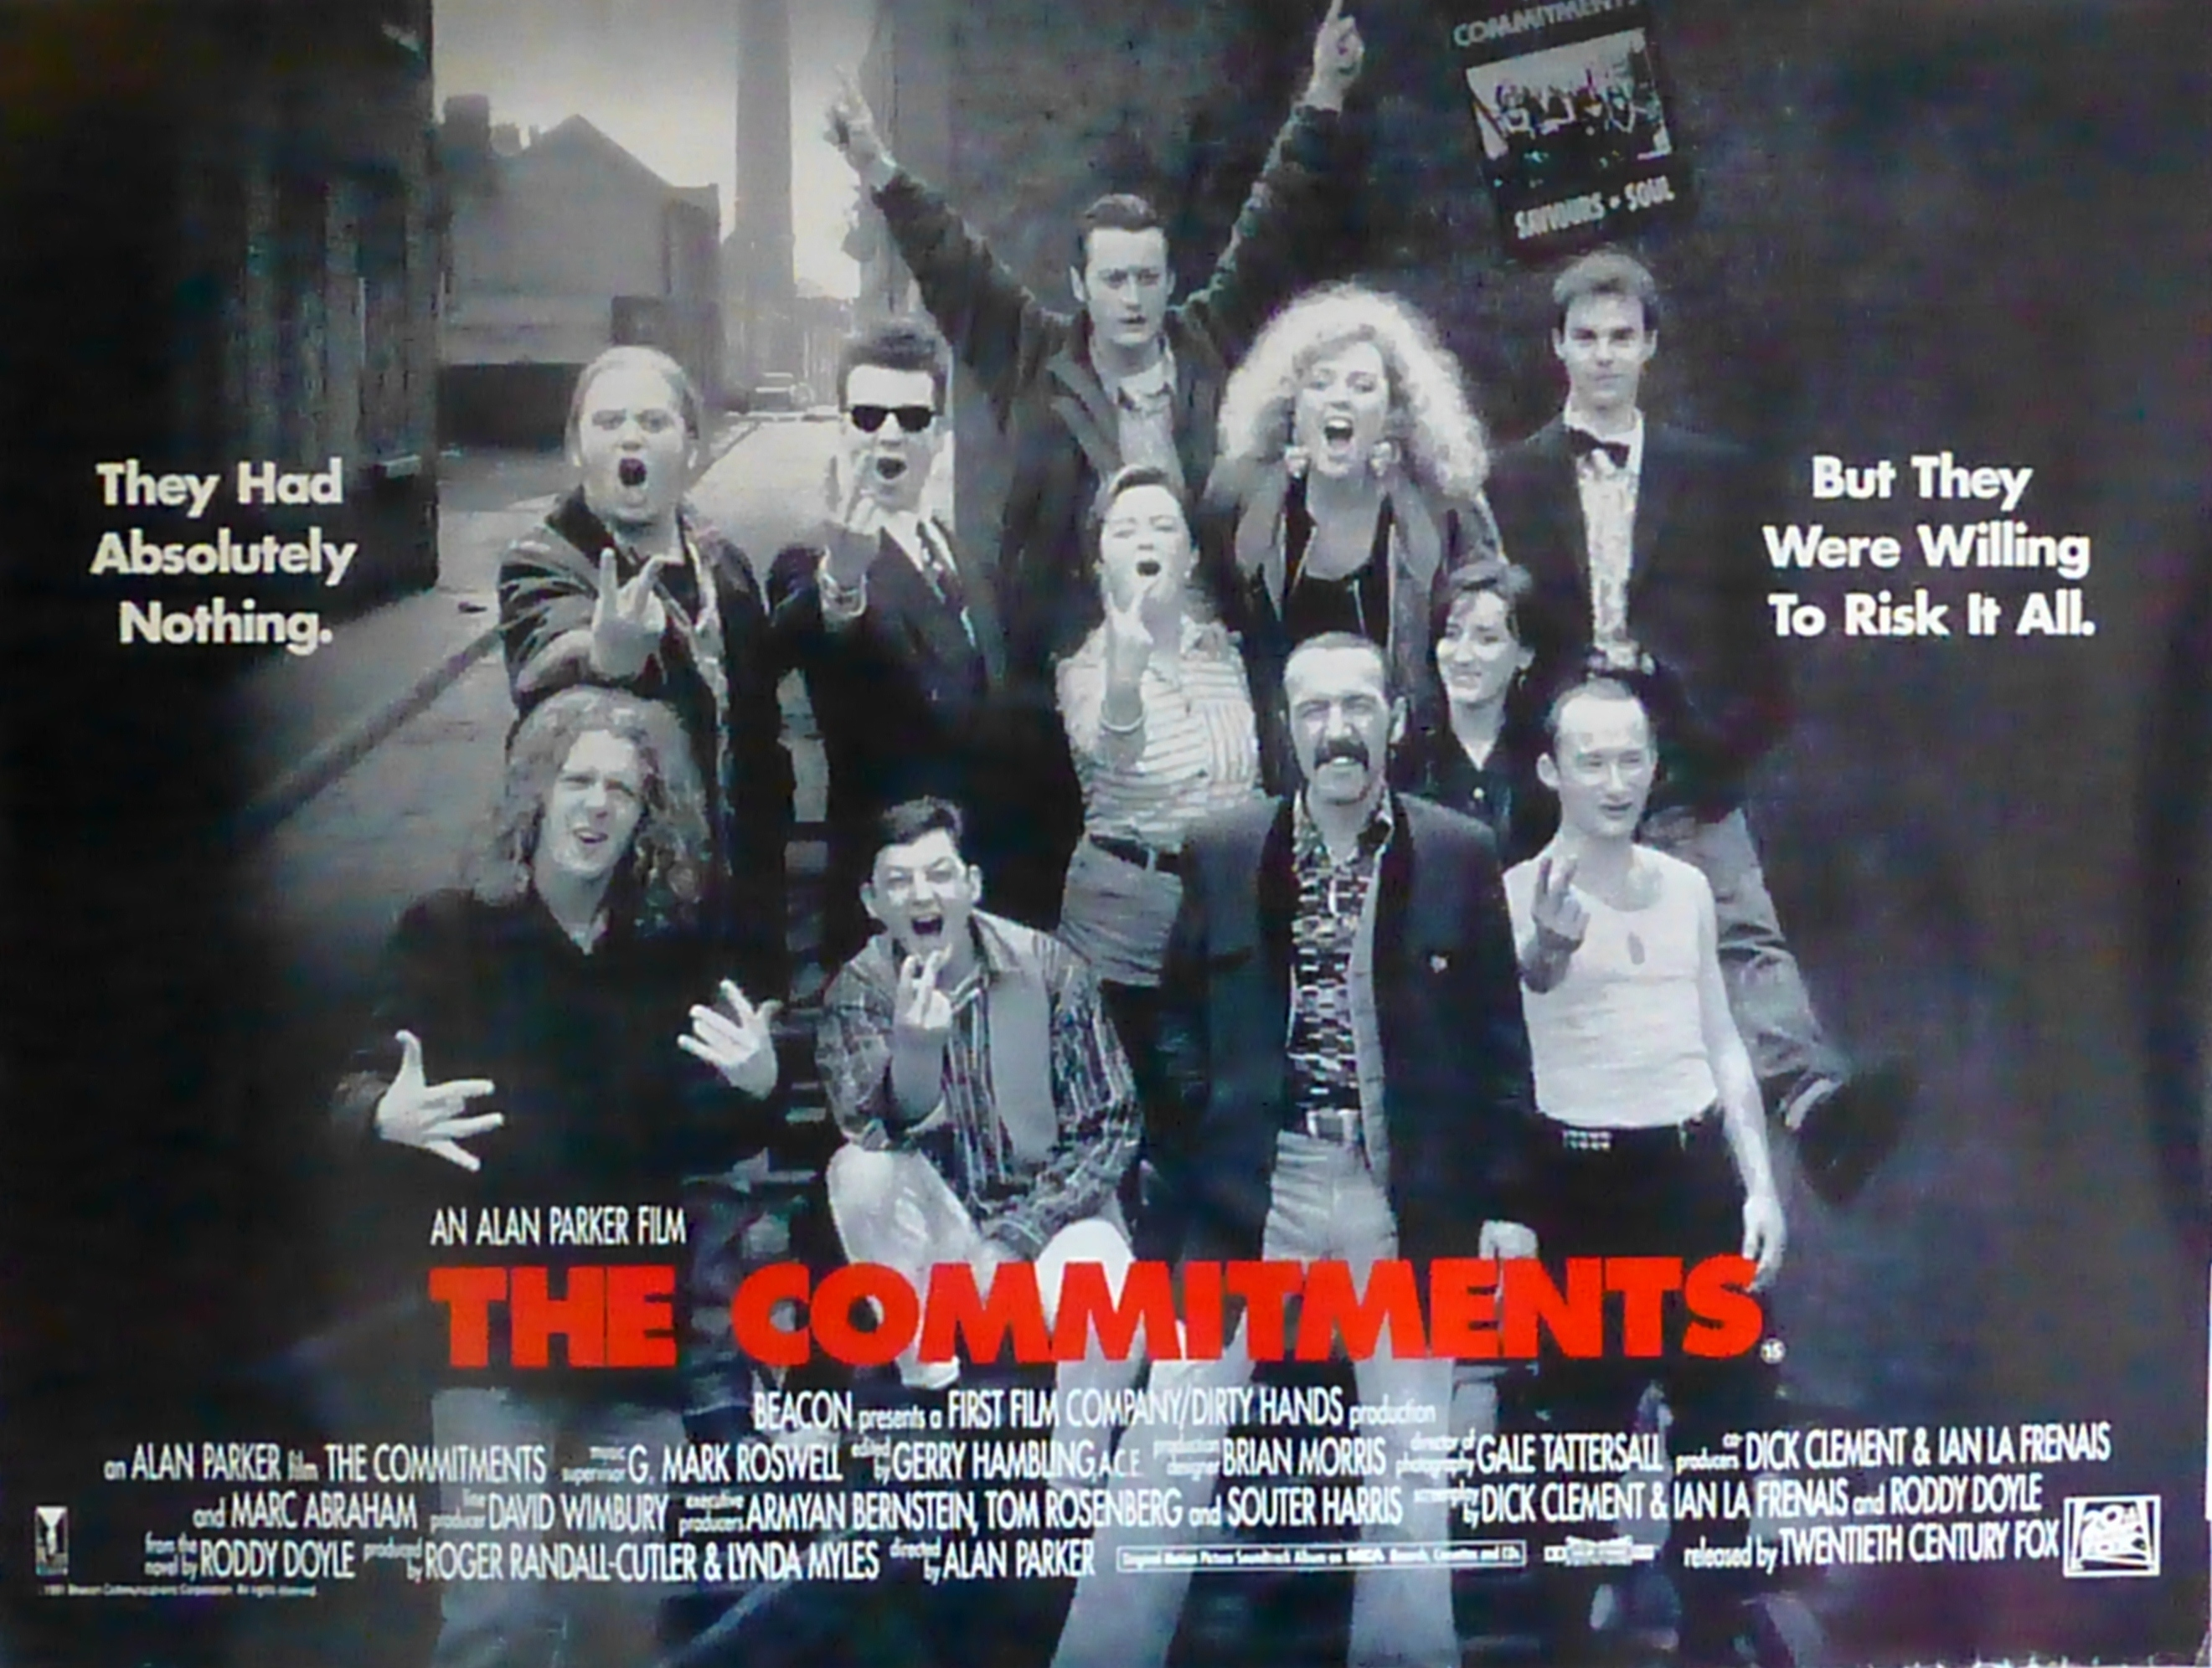 Commitments, The - The Commitments Vol. 2 (Music From The Original Motion Picture Soundtrack)